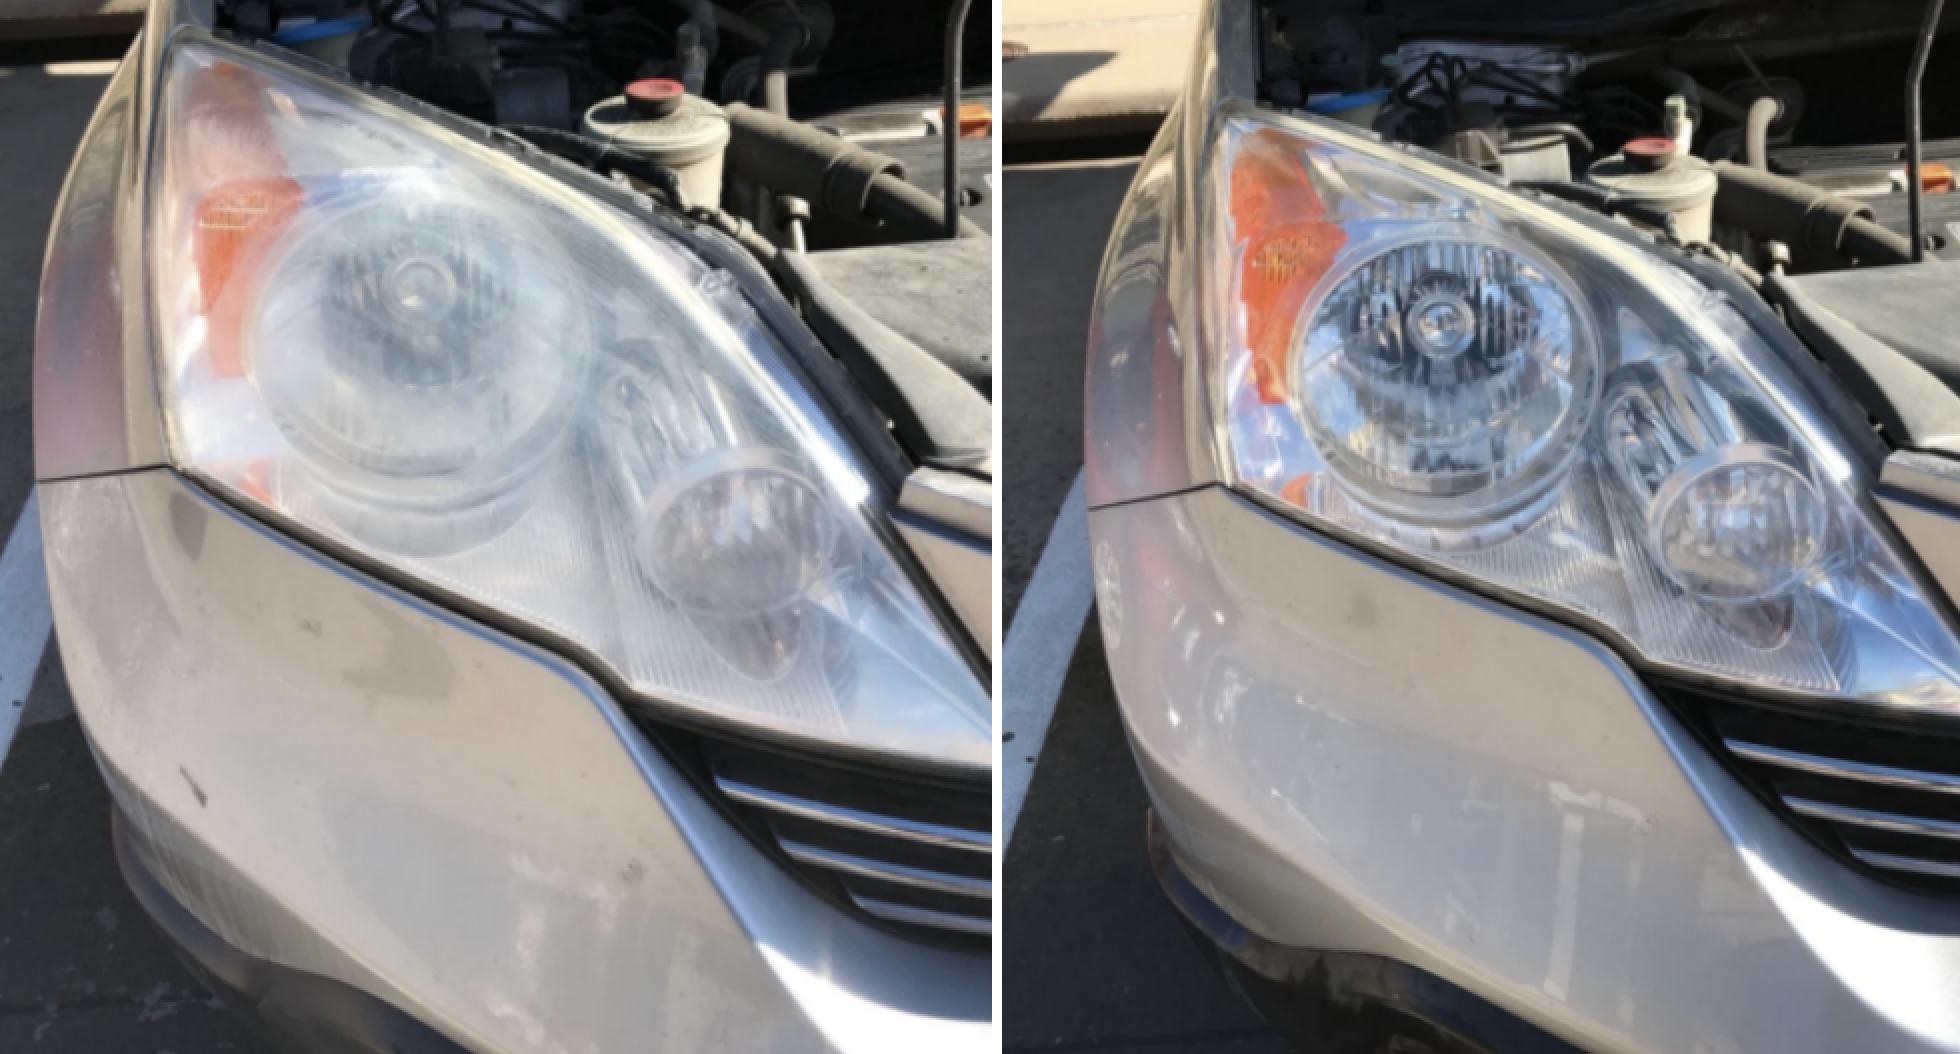 Reviewer's before/after pic of headlights. After pic shows much clearer headlights.